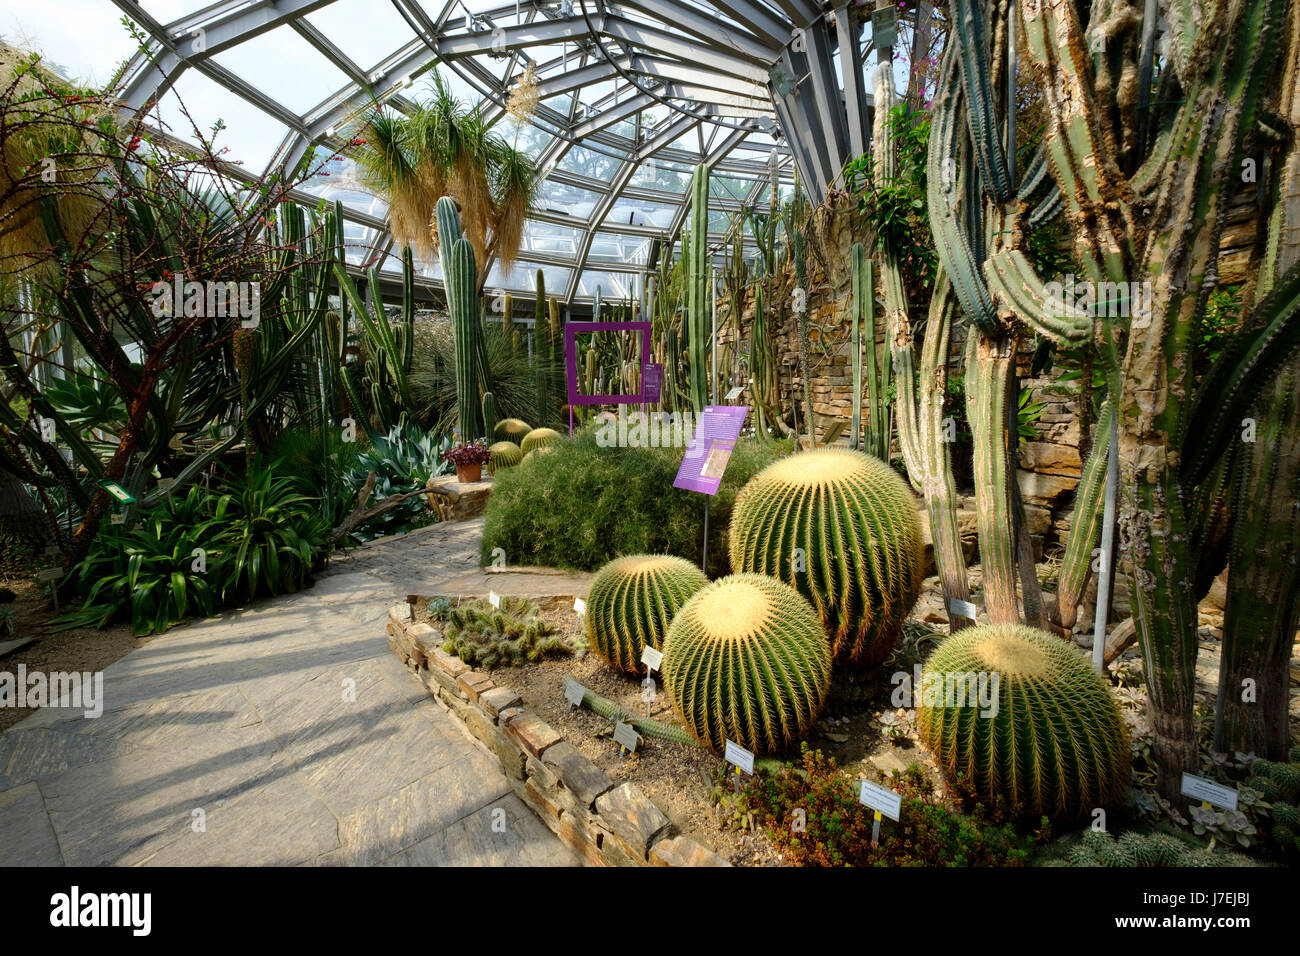 Superbe Cactus Display In Greenhouse At Berlin Botanical Garden In Dahlem, Berlin,  Germany